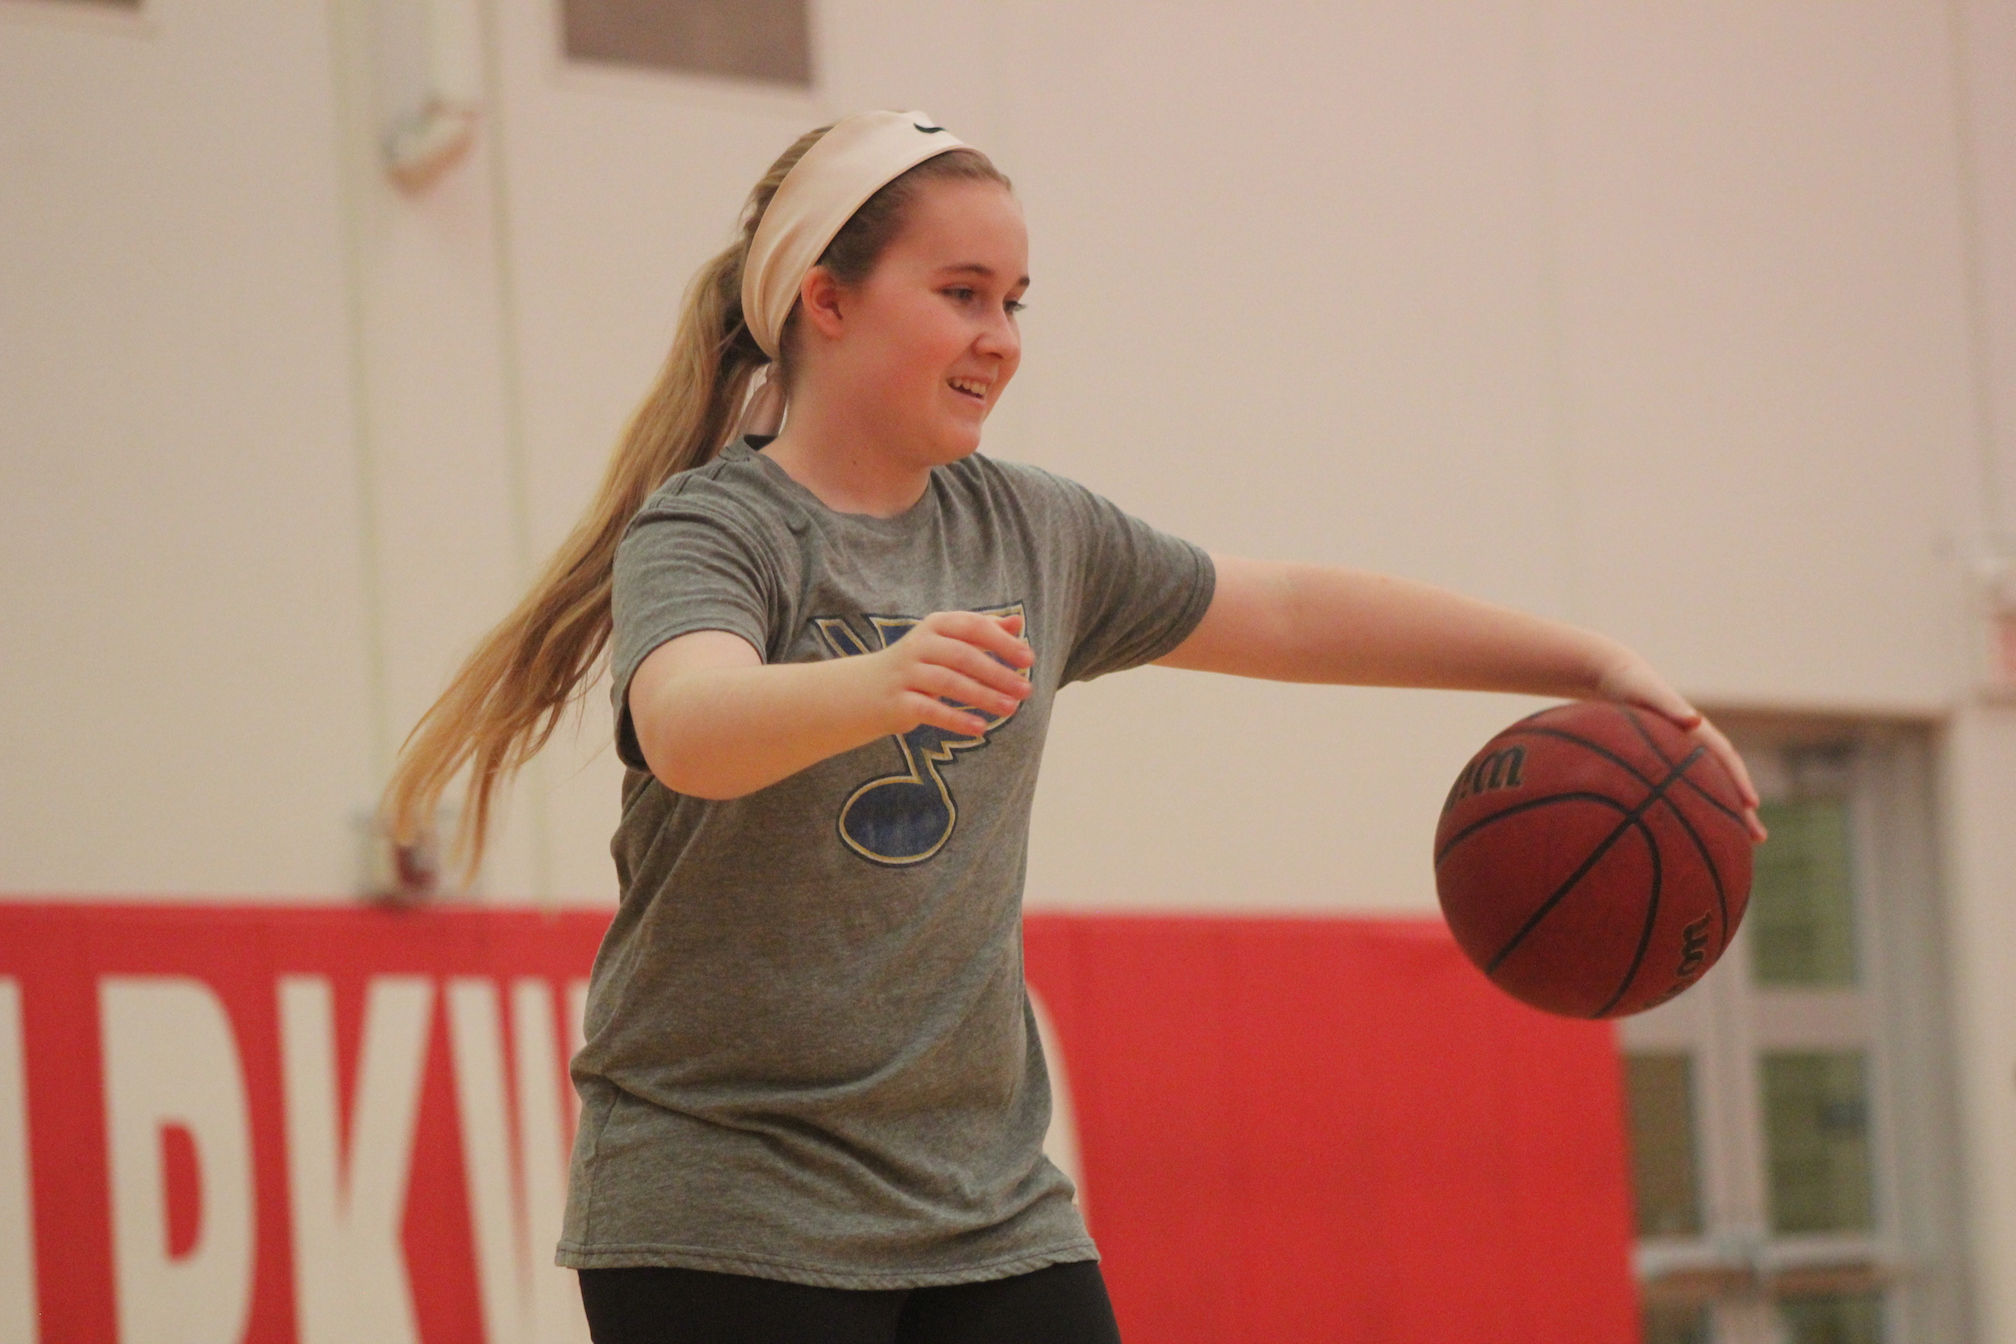 Emily+Hovey%2C+sophomore%2C+warms+up+during+JV+girls+basketball+practice.